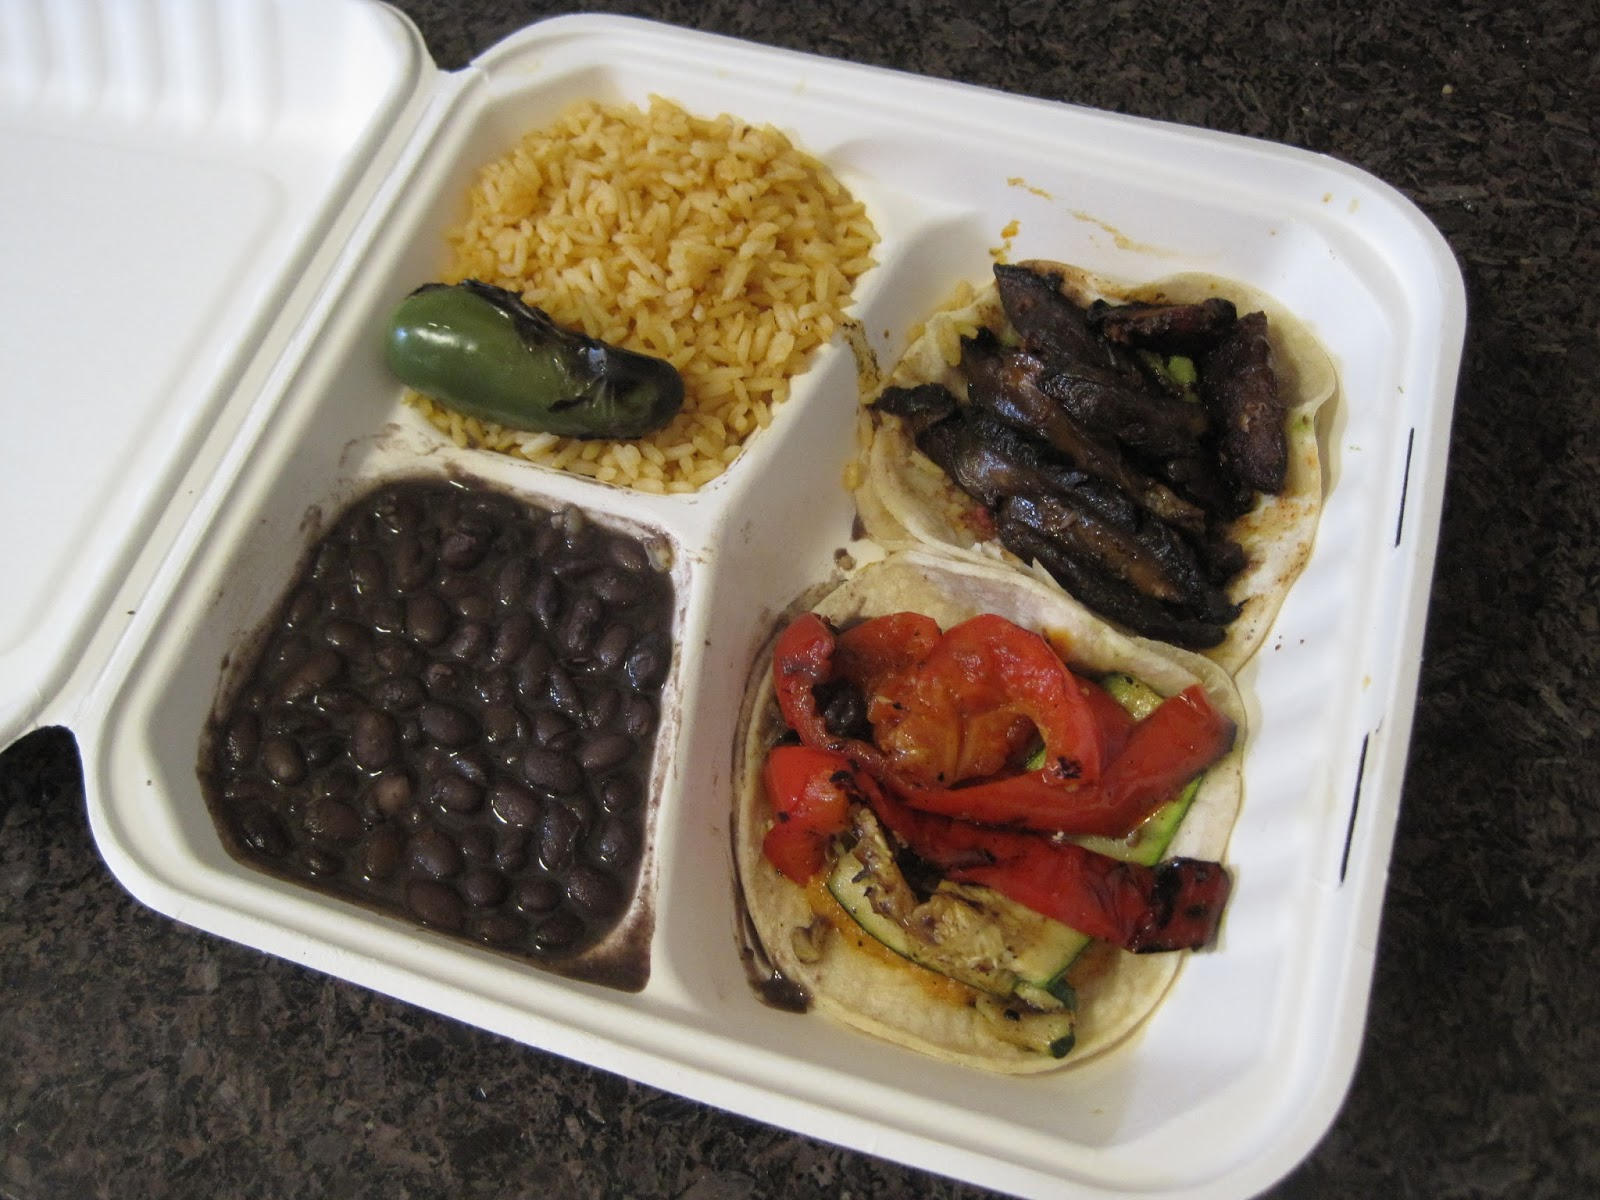 Spicy Portabella Mushroom & Grilled Zucchini & Red Peppers Taco Plate...